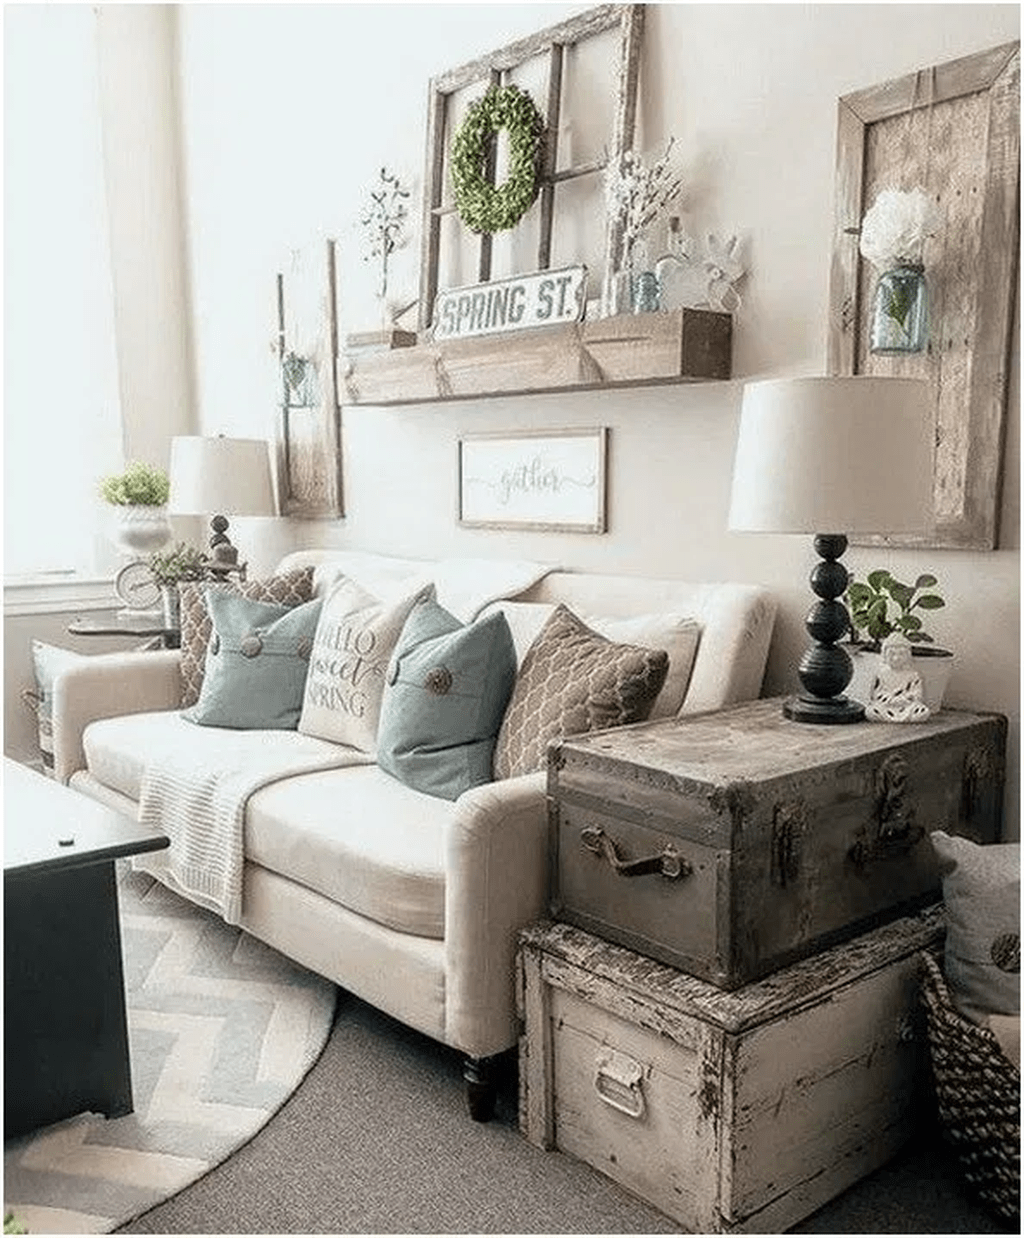 Pin By Terron Dickerson On Dream House In 2021 Farmhouse Decor Living Room Farm House Living Room Chic Living Room